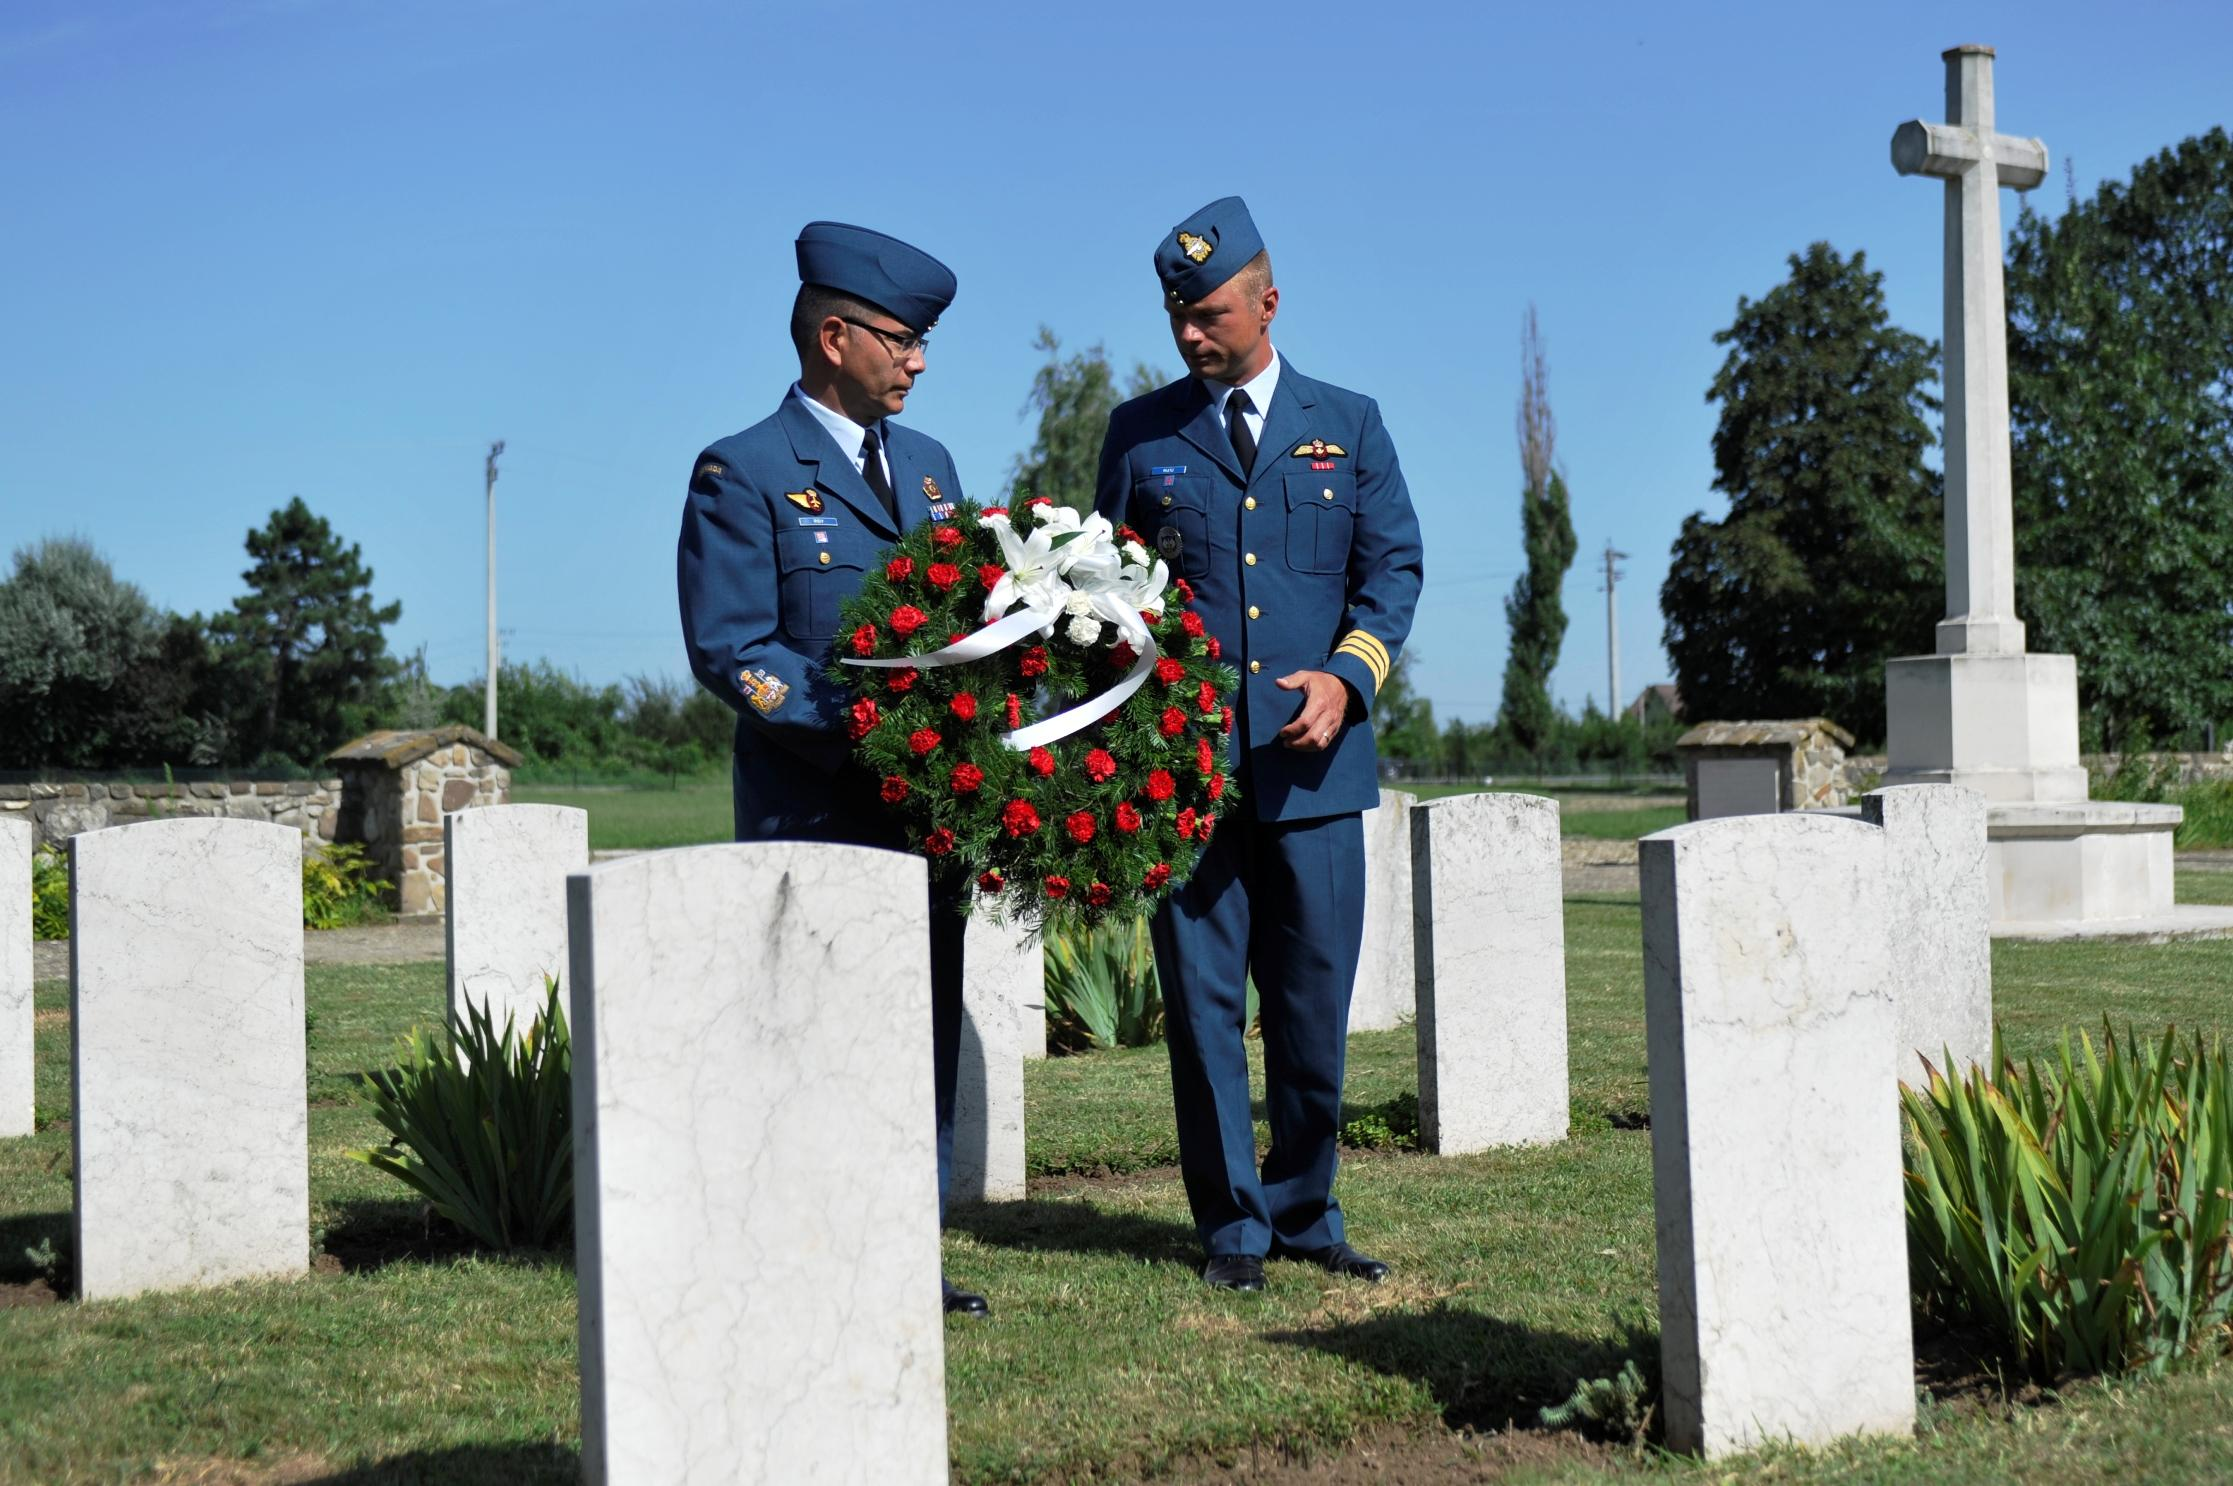 The commander of the Canadian Air Task Force Romania, Lieutenant-Colonel David Pletz (right), and Chief Warrant Officer Alain Roy lay a wreath at the Commonwealth War Cemetery in Bucharest on August 1, 2014, in remembrance of the two members of the Royal Canadian Air Force who died in Romania during the Second World War:  Warrant Officer Class I Leslie Frederick Dutton and Flight Sergeant Reginald Thomas White Marsh. PHOTO: Captain Christopher Daniel